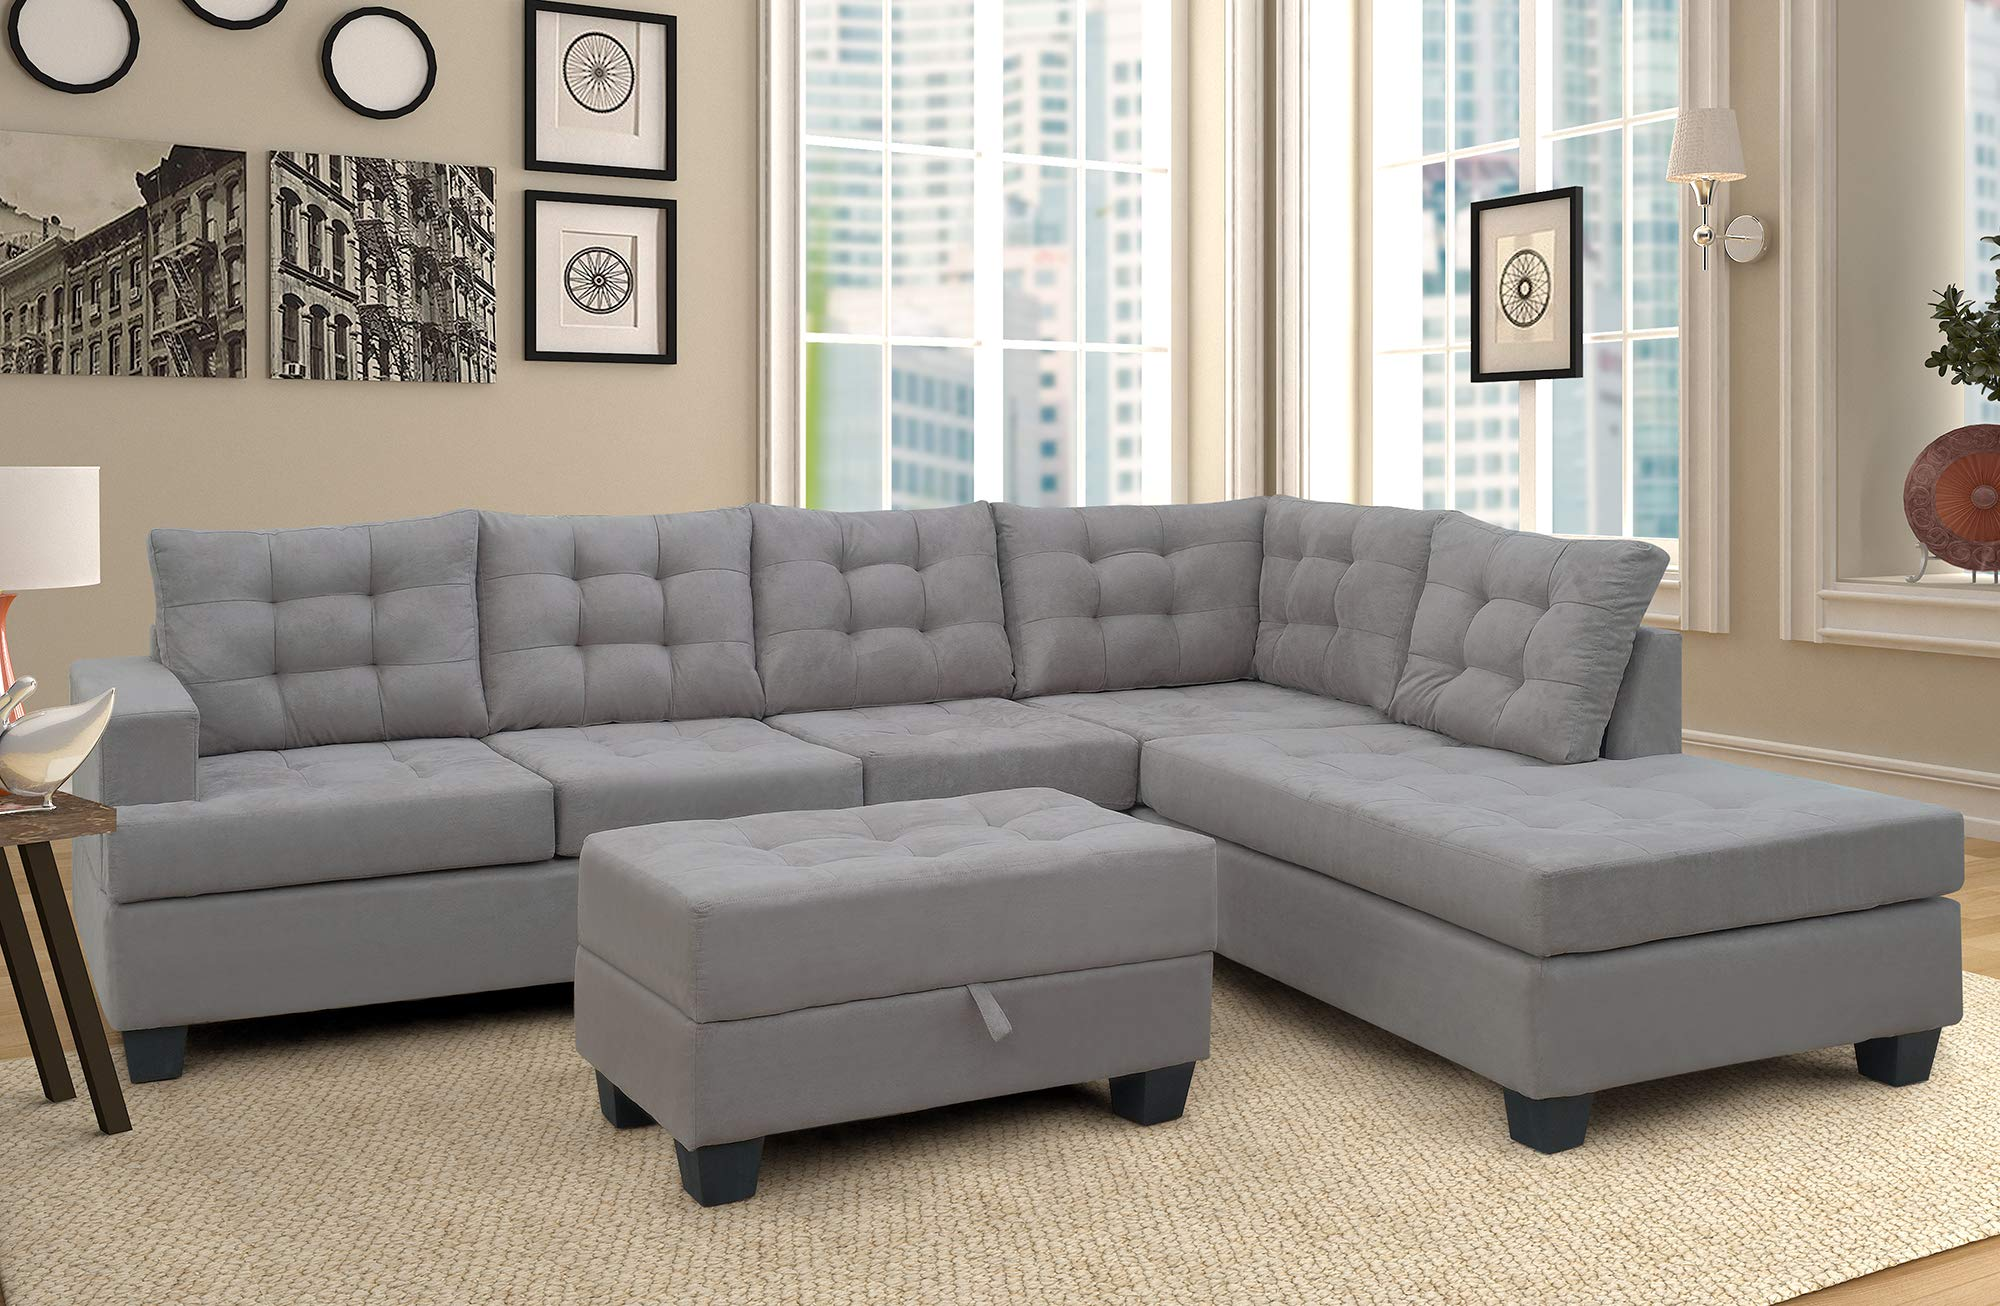 Merax Sectional Sofa with Chaise and Ottoman 3-Piece Sofa for Living Room Furniture,(Gray) by Merax